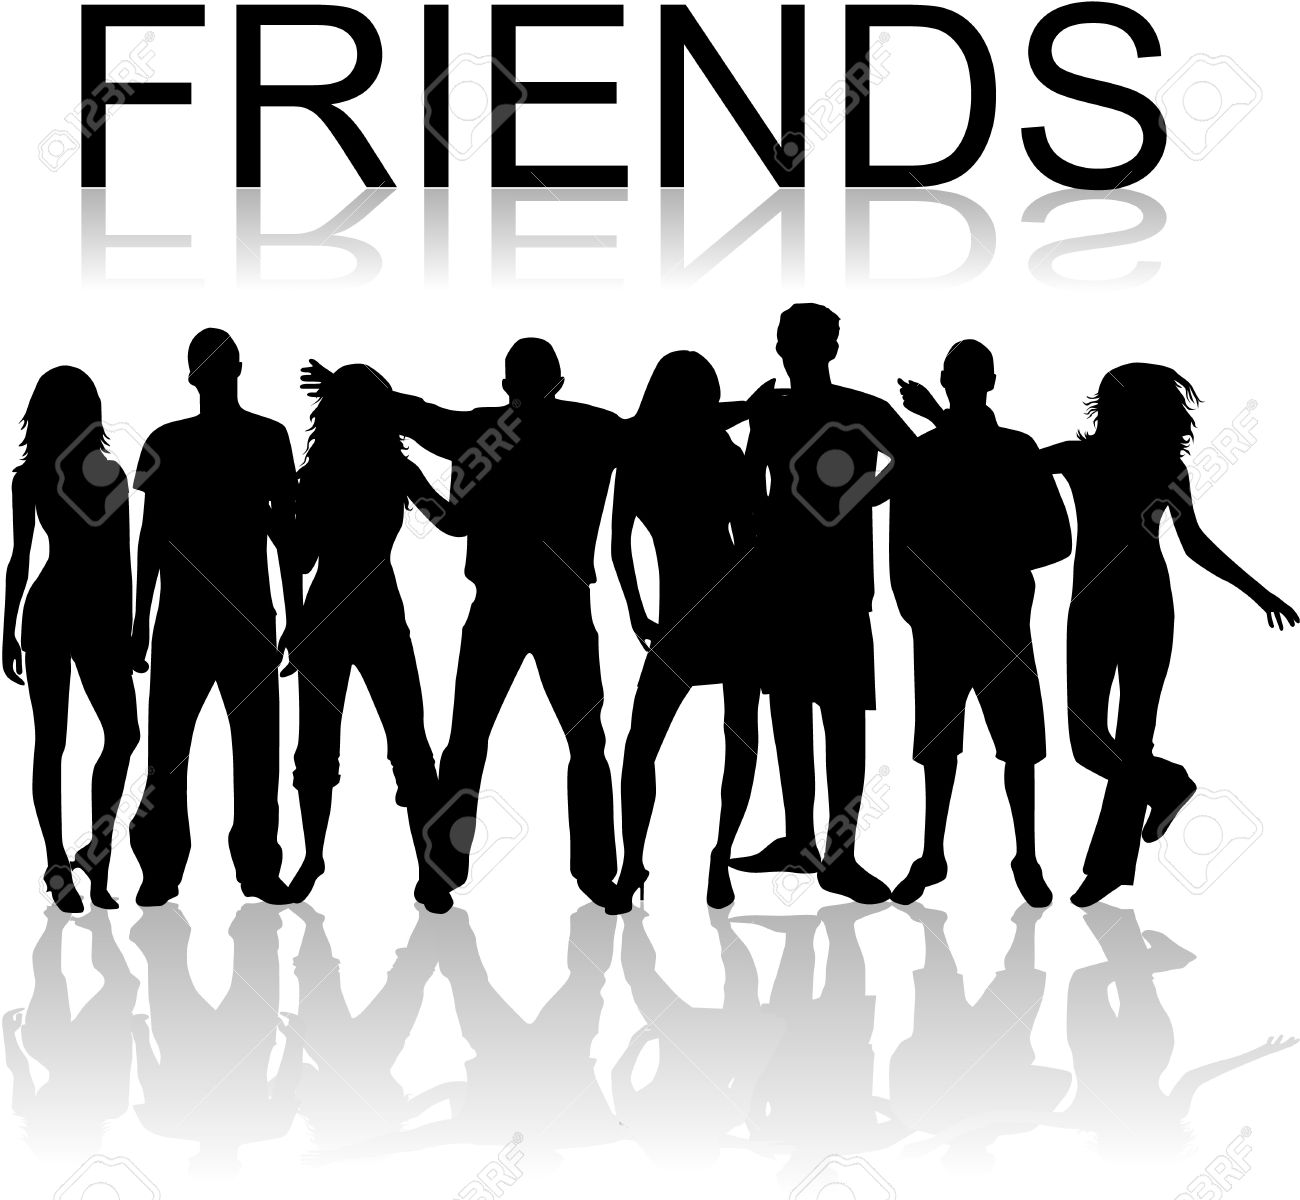 Free friend silhouette cliparts. Friends clipart shadow